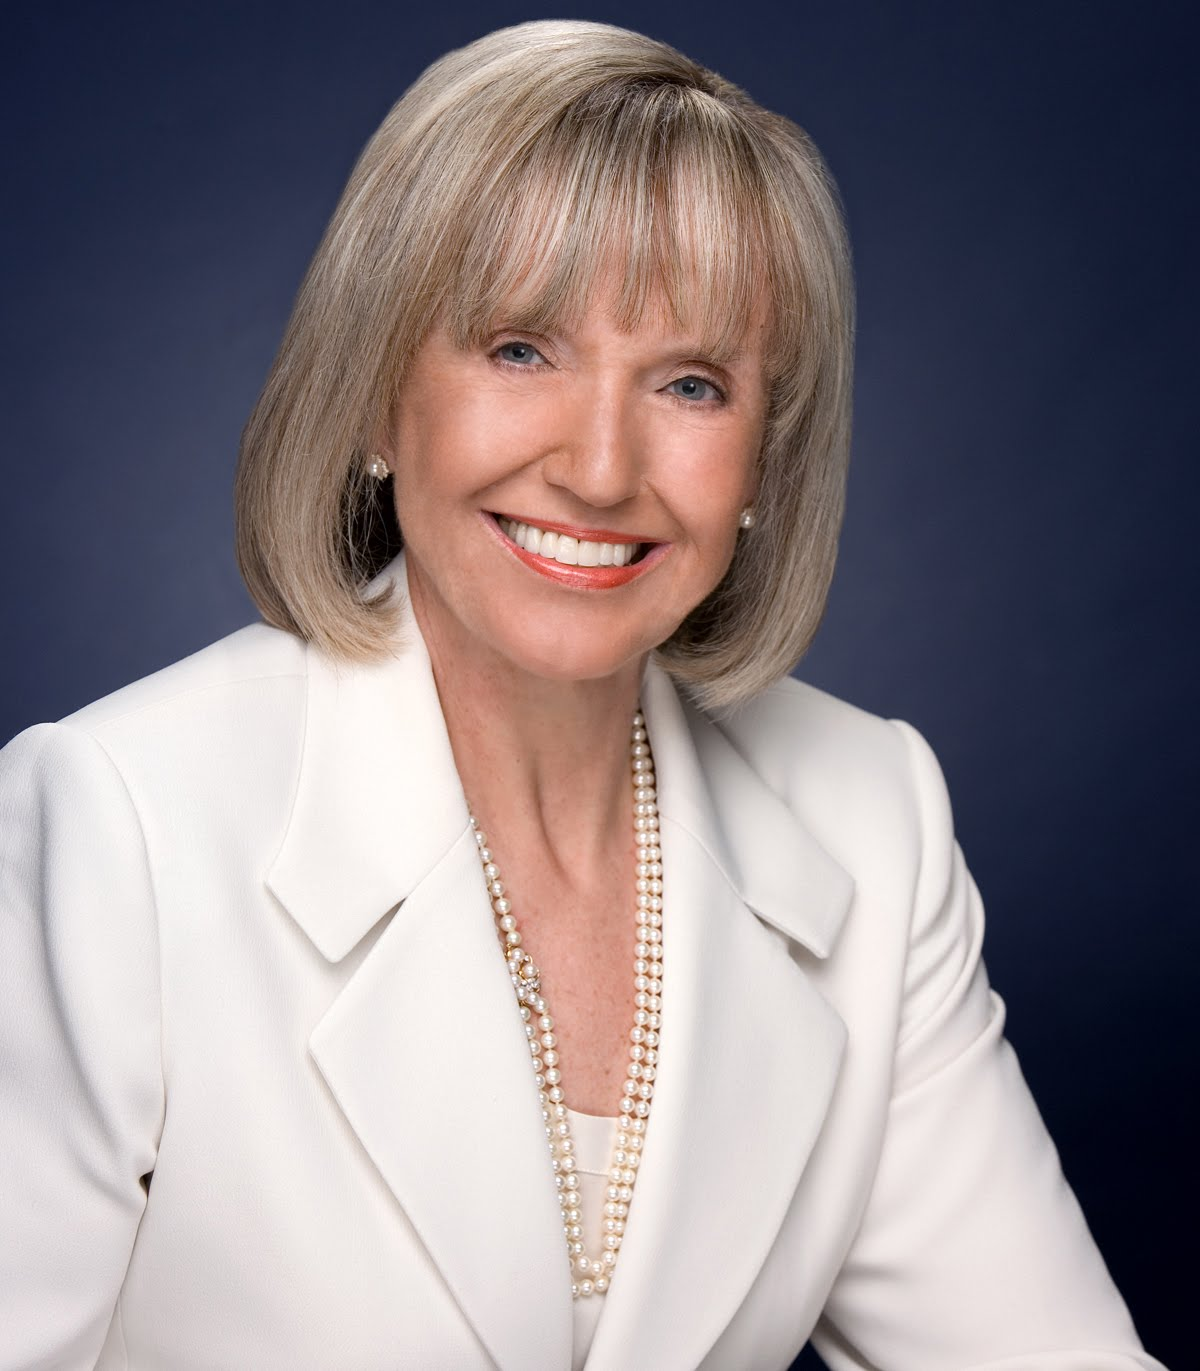 Cheers To Governor Brewer >> Judge's ruling on Arizona immigration law a great one | IrishCentral.com